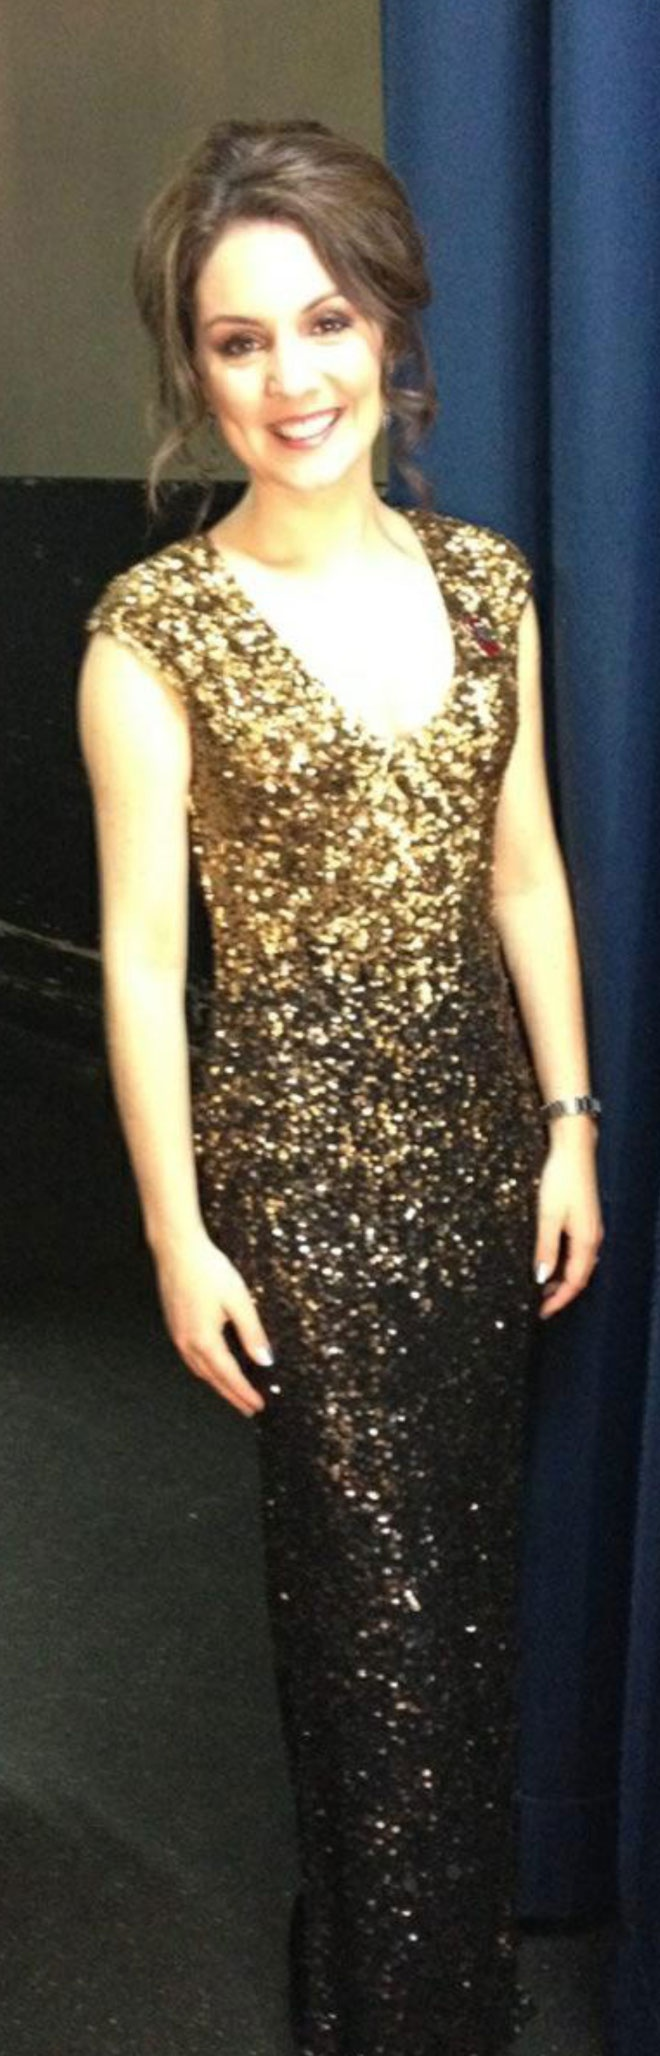 ITV Daybreak's weather presenter Laura Tobin wears Collection 8 Colette Dress to the Pride of Britain Awards, October 2012